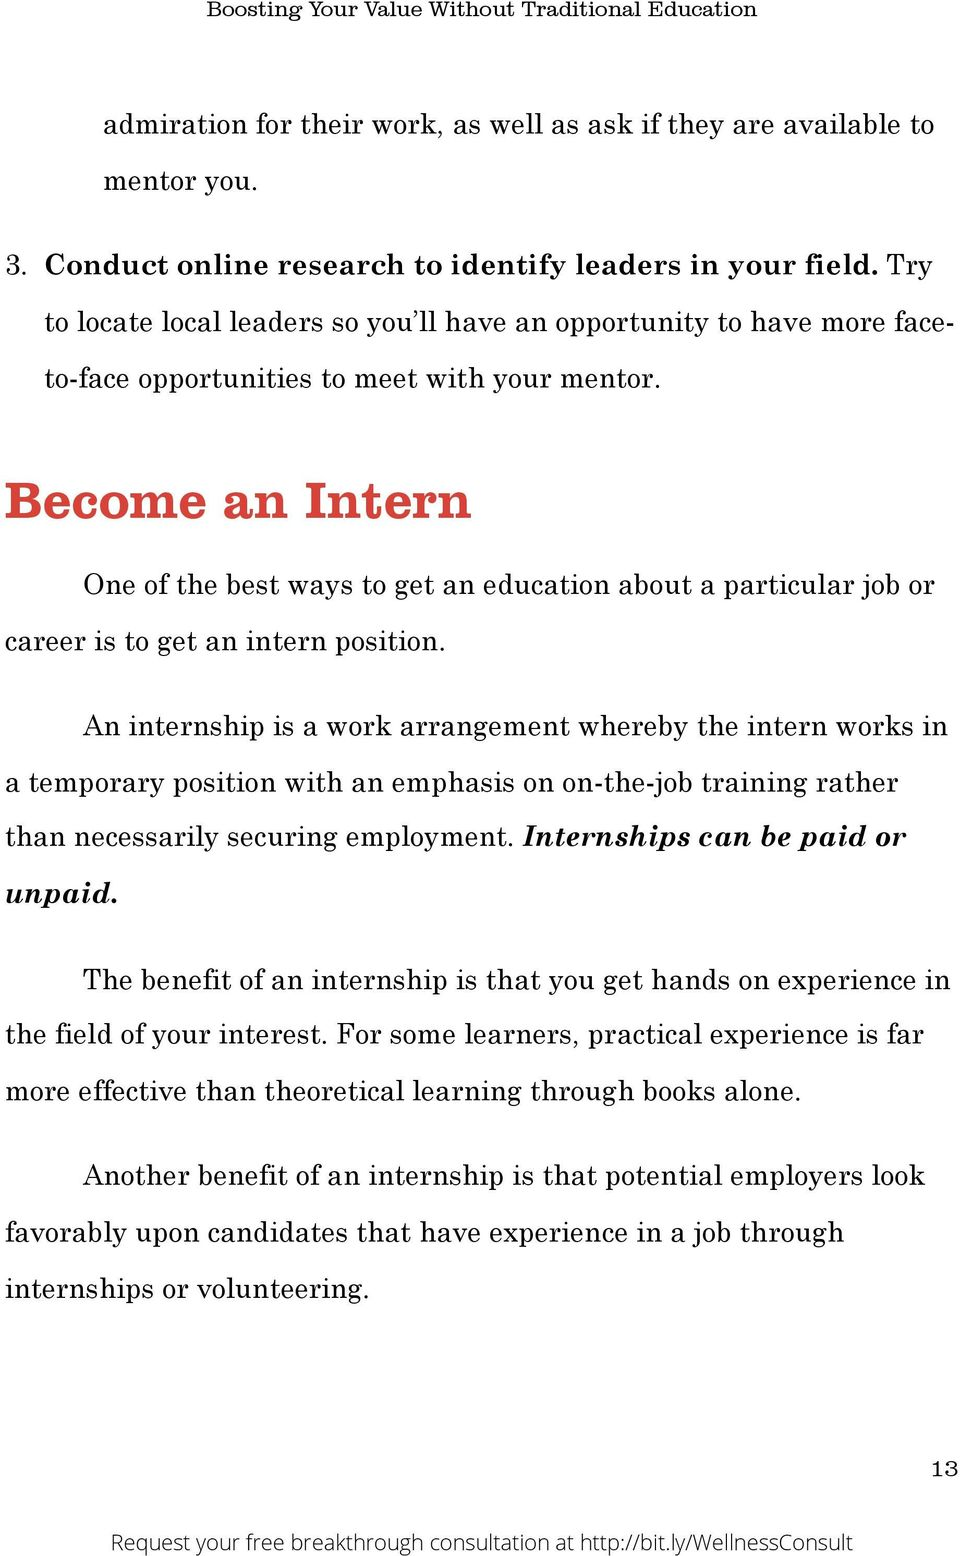 Become an Intern One of the best ways to get an education about a particular job or career is to get an intern position.